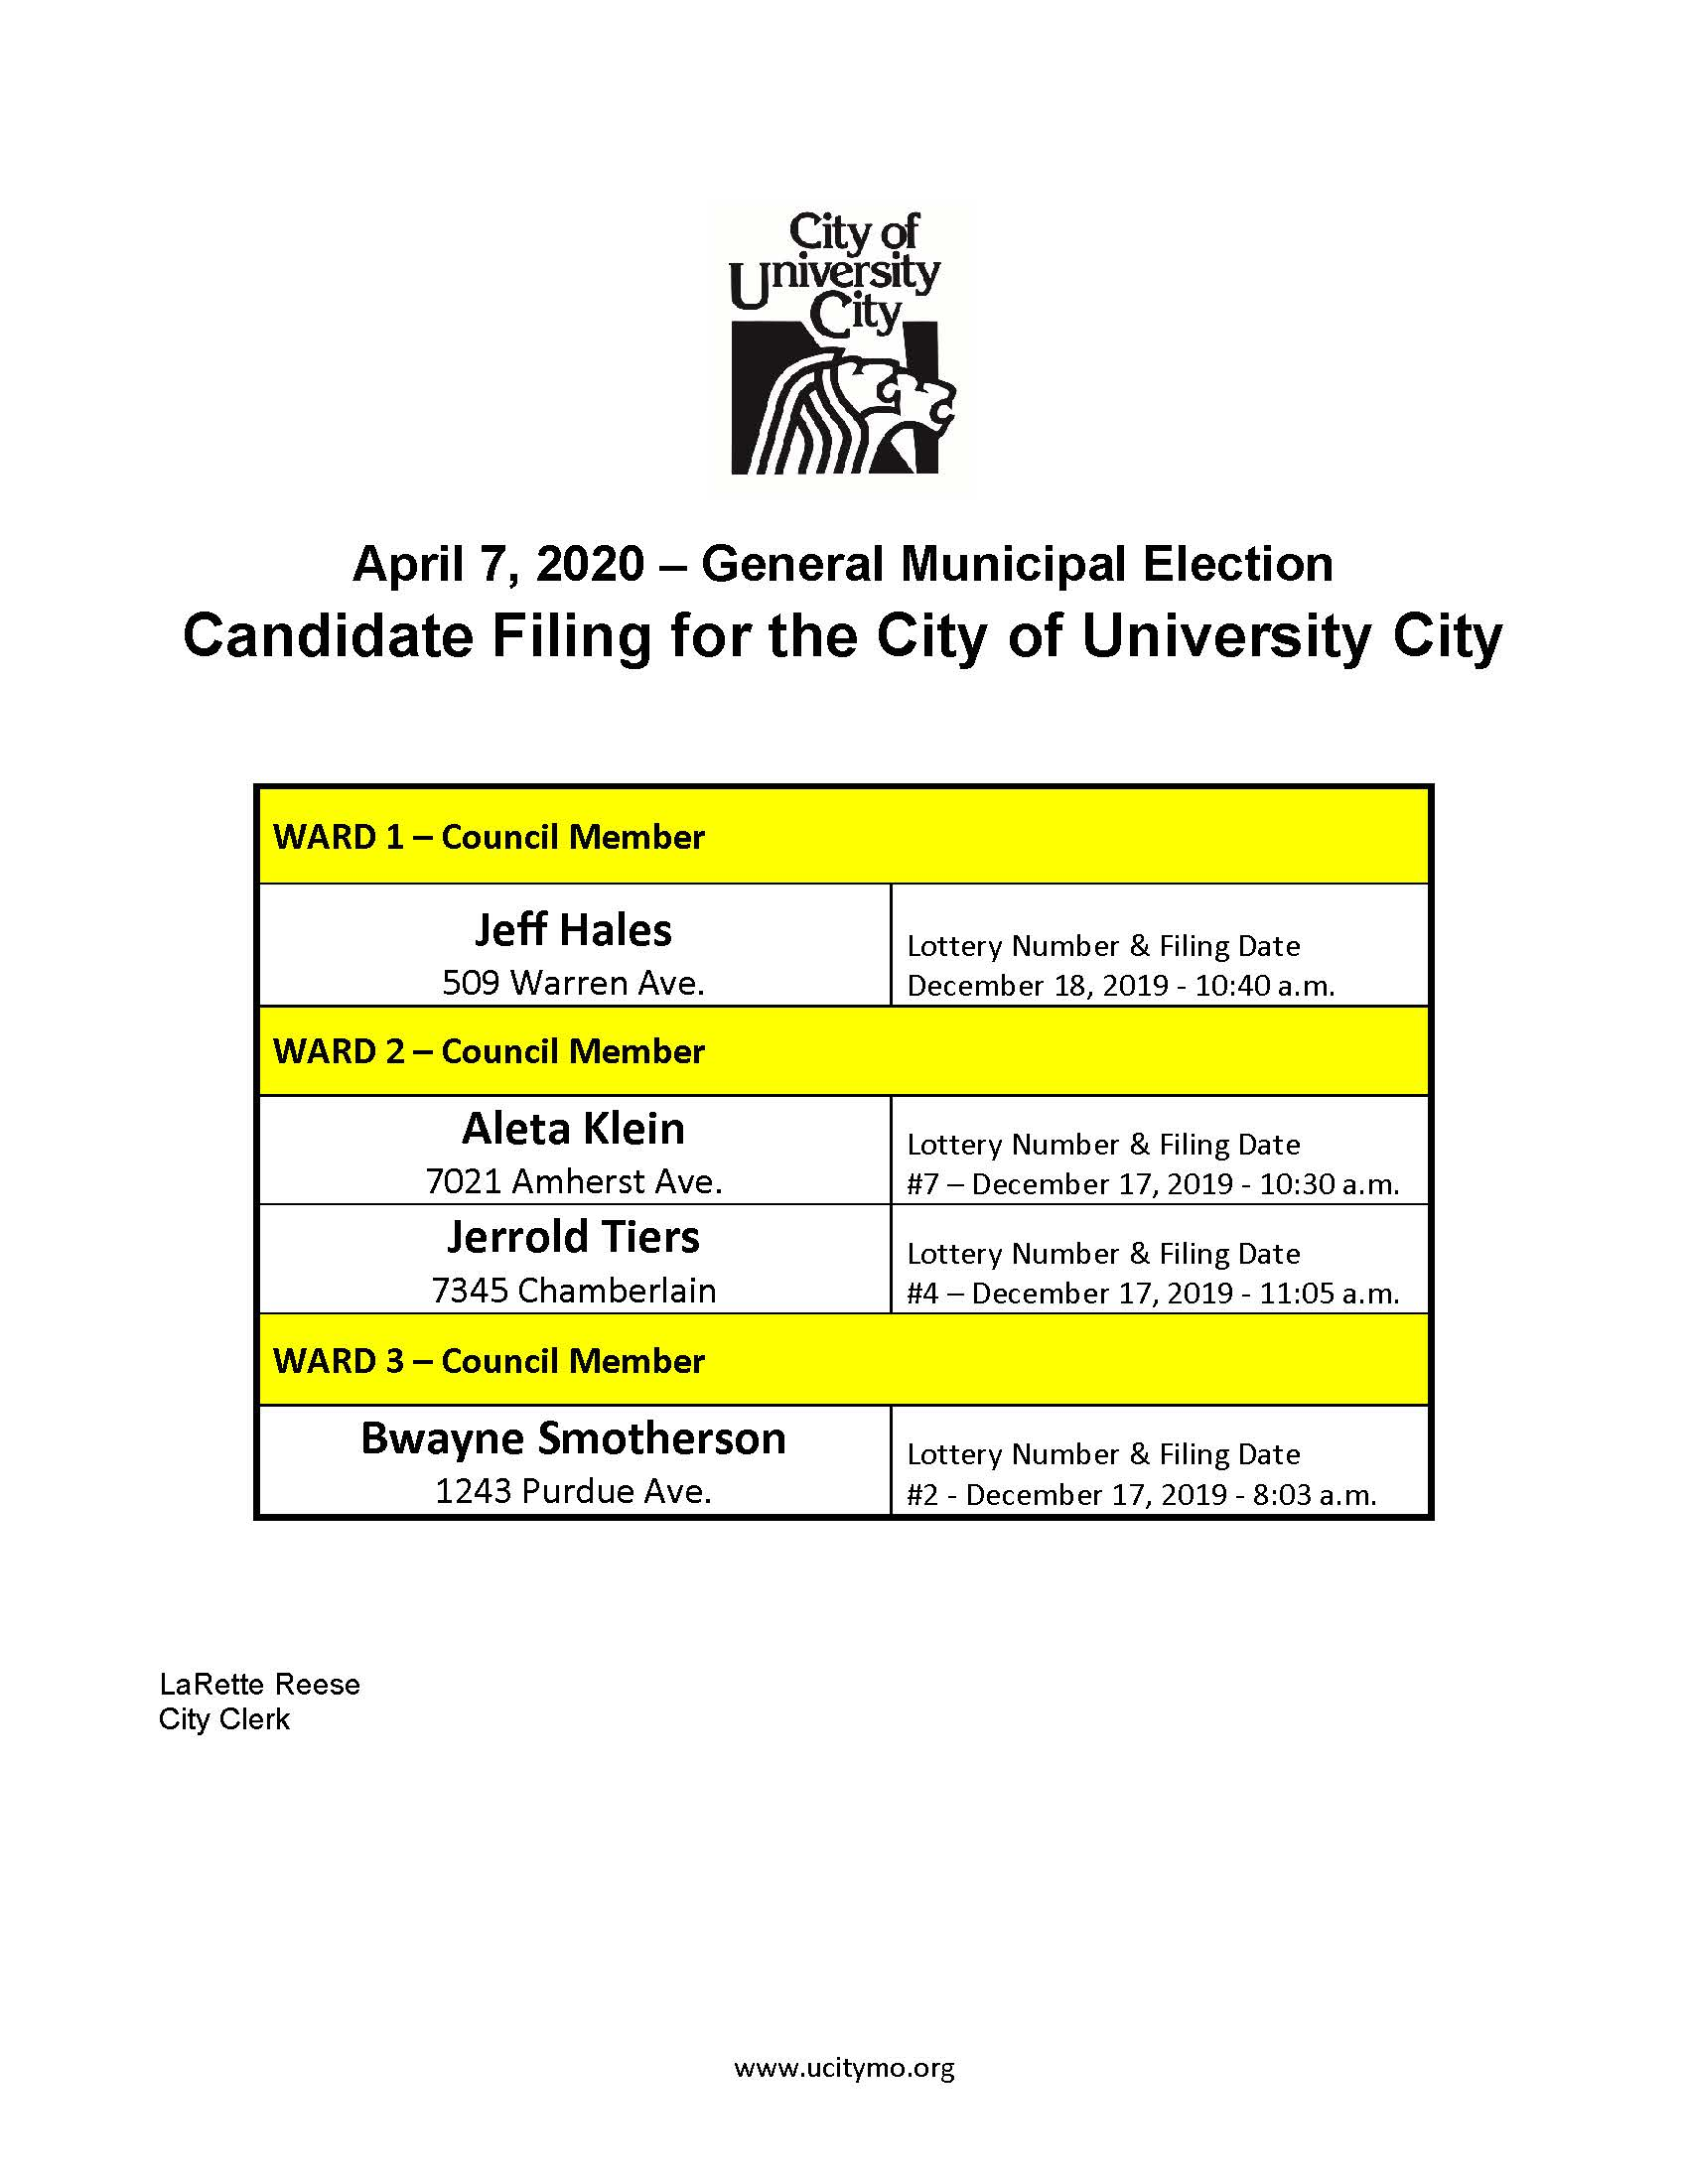 Candidates Filing for Office - April 7, 2020 Election